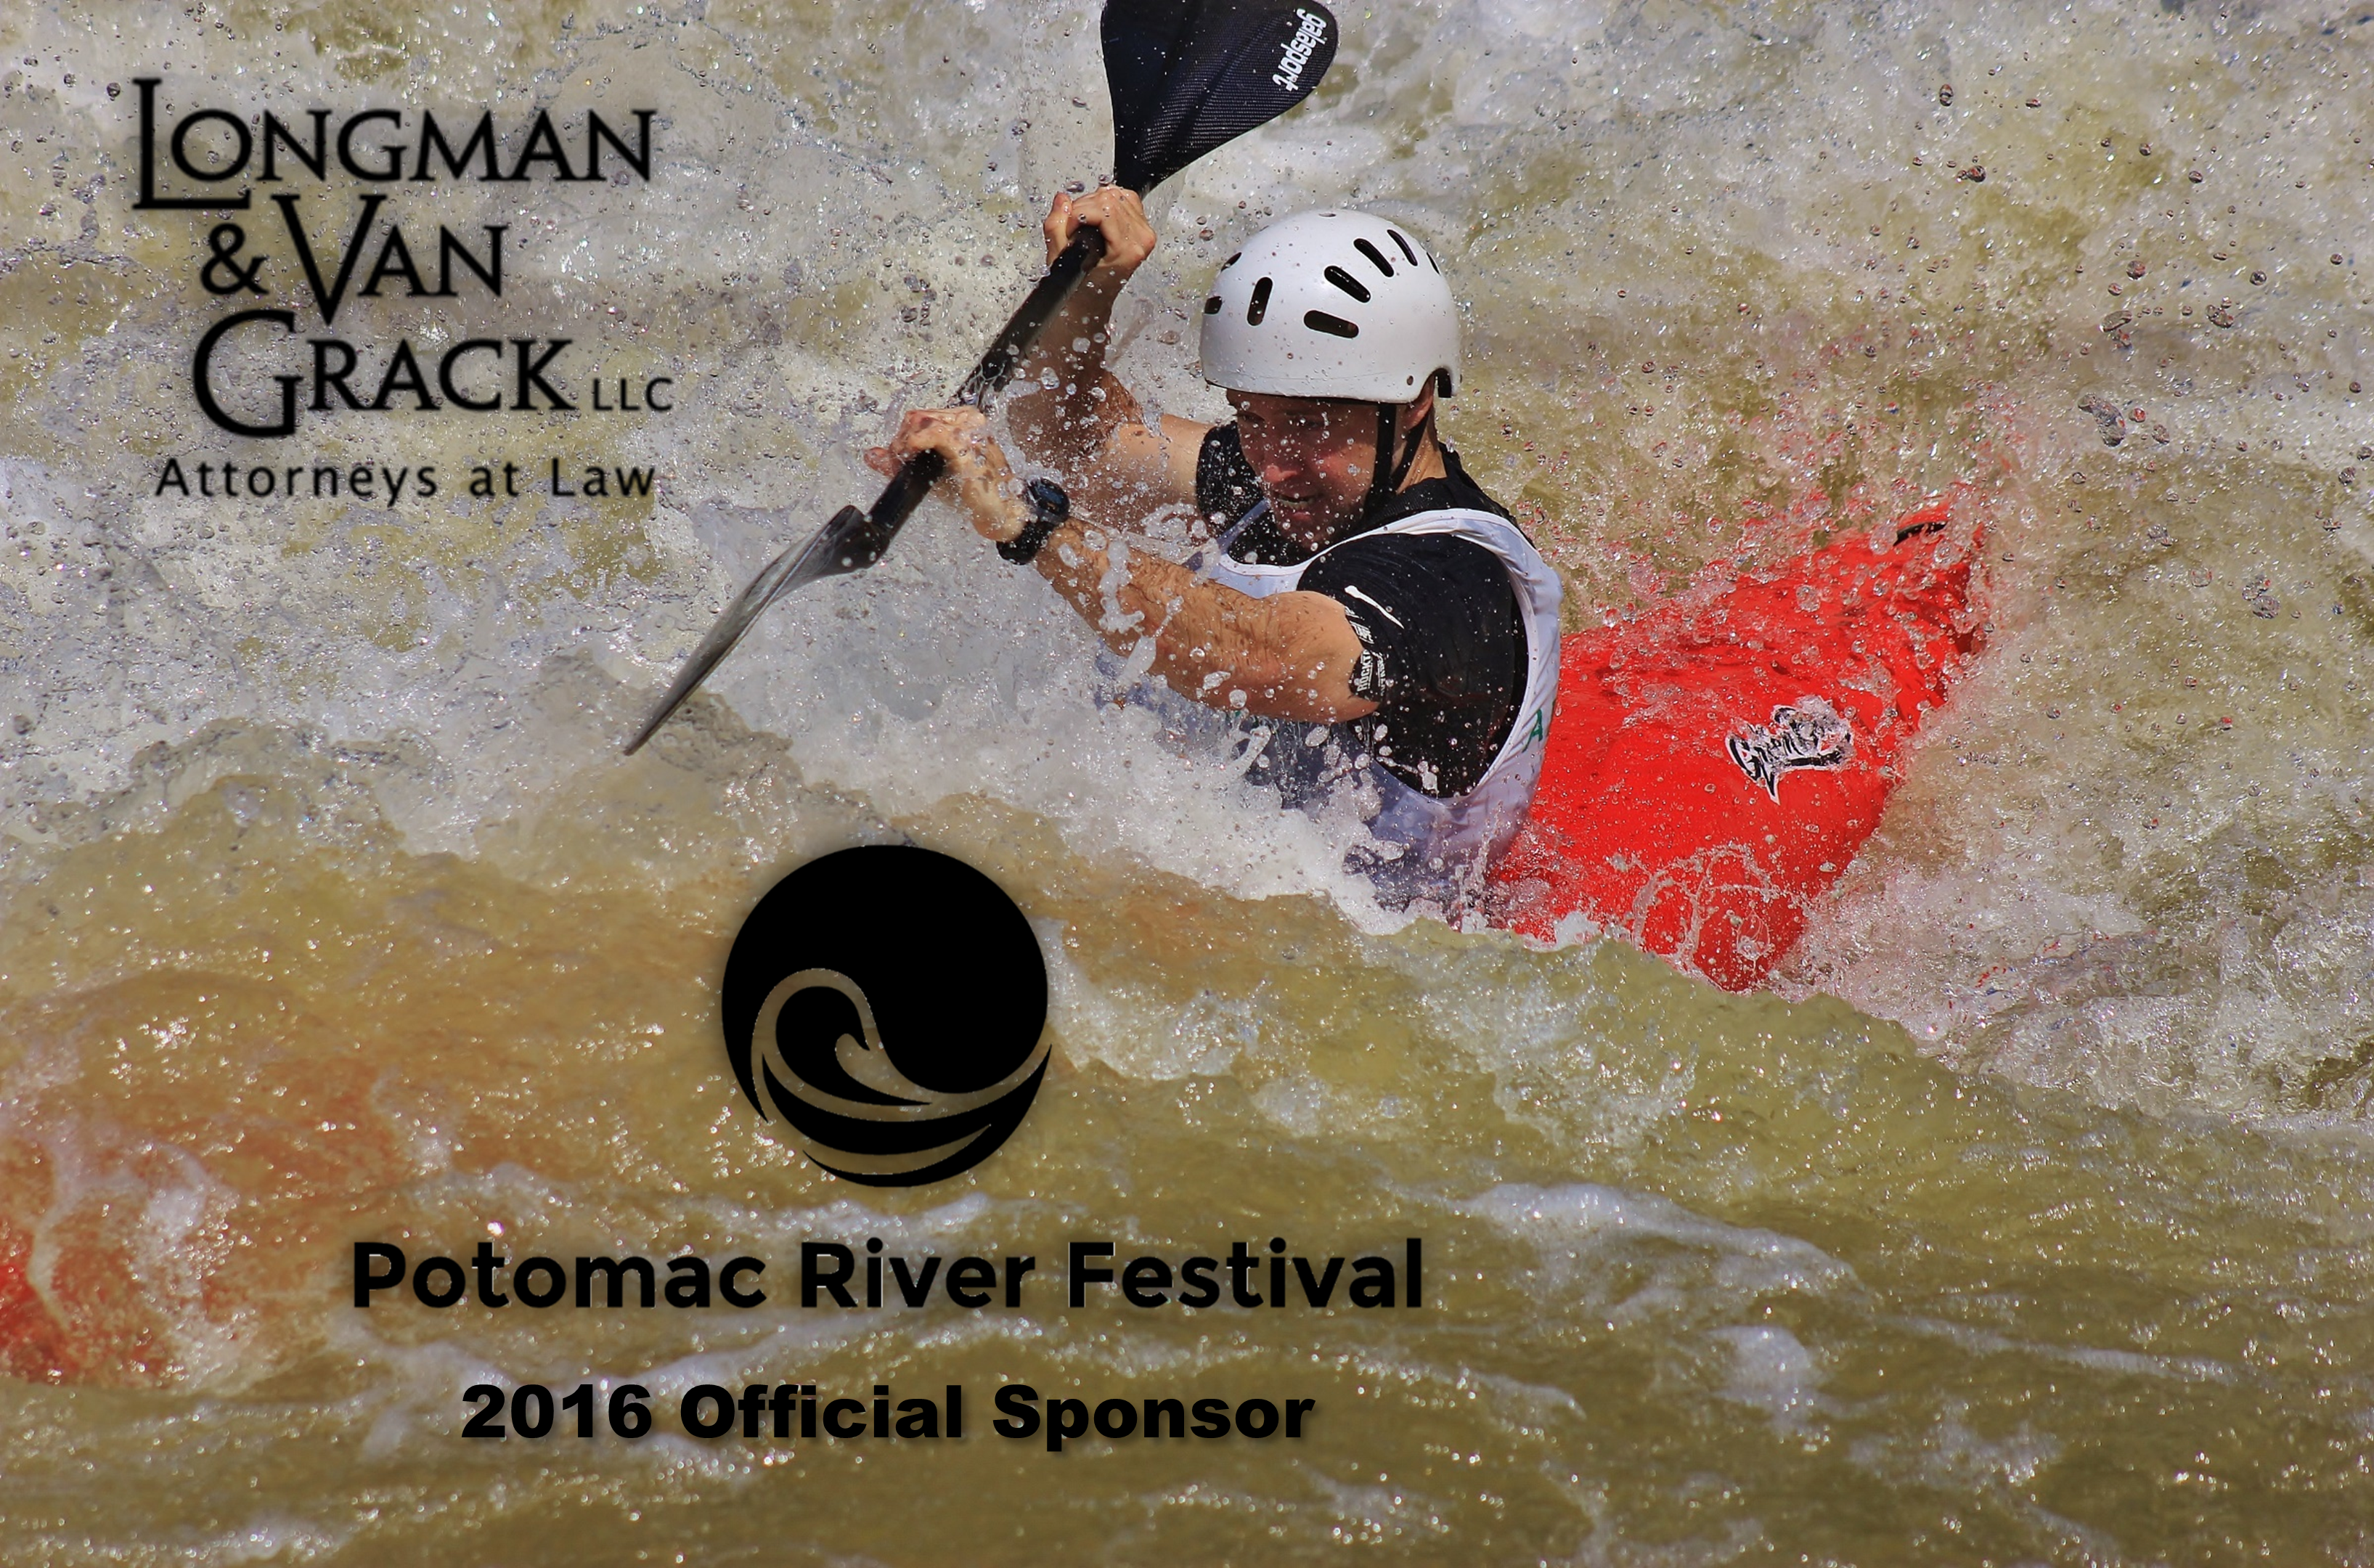 Longman & Van Grack Sponsors the 2016 Potomac River Festival and Great Falls Race